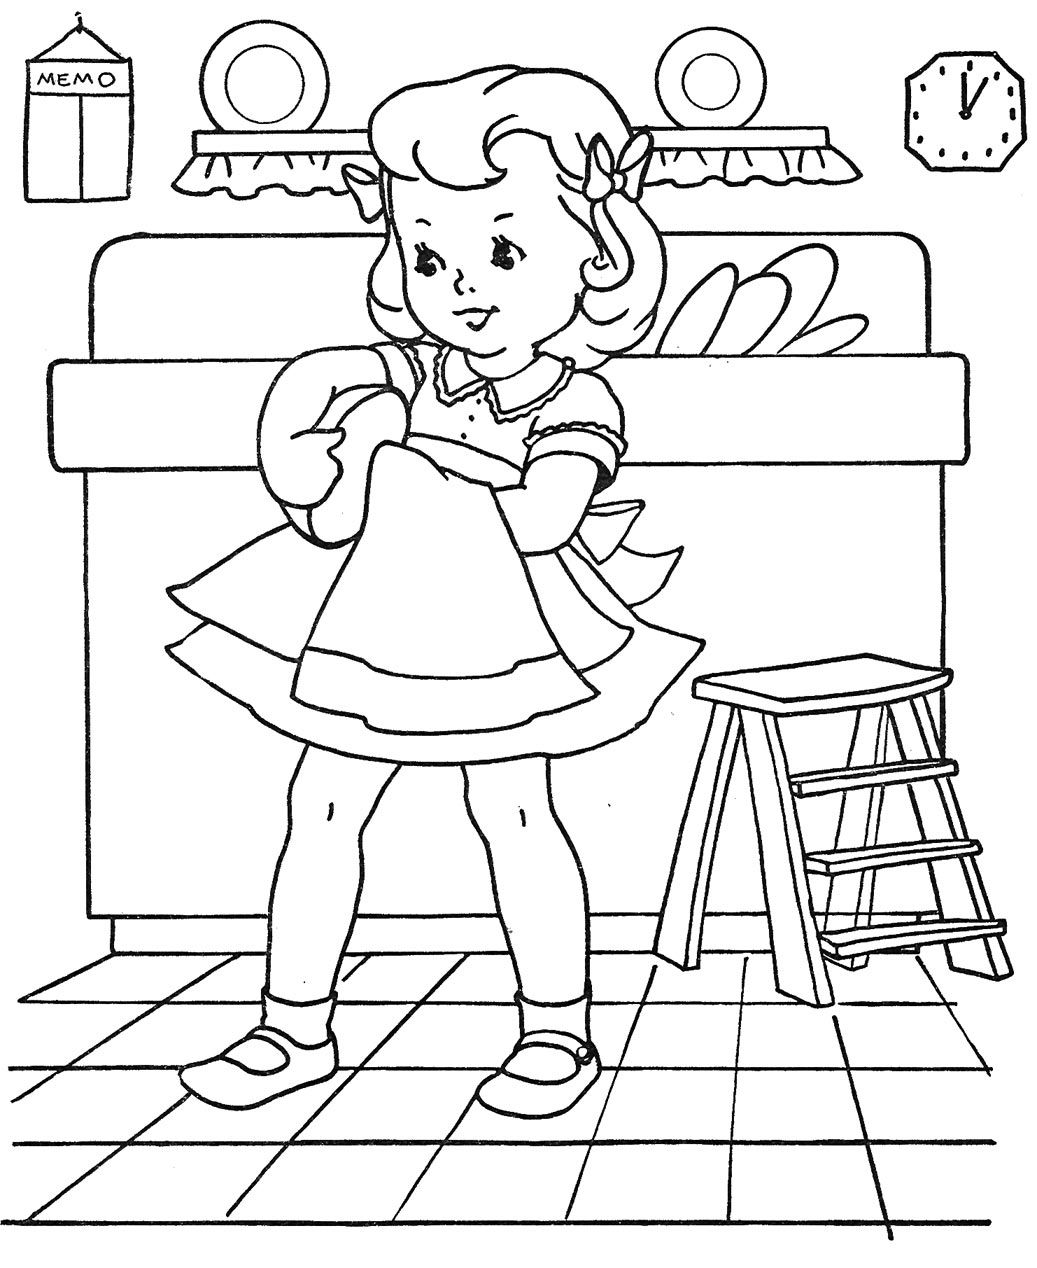 coloring pages of dishes - photo#13